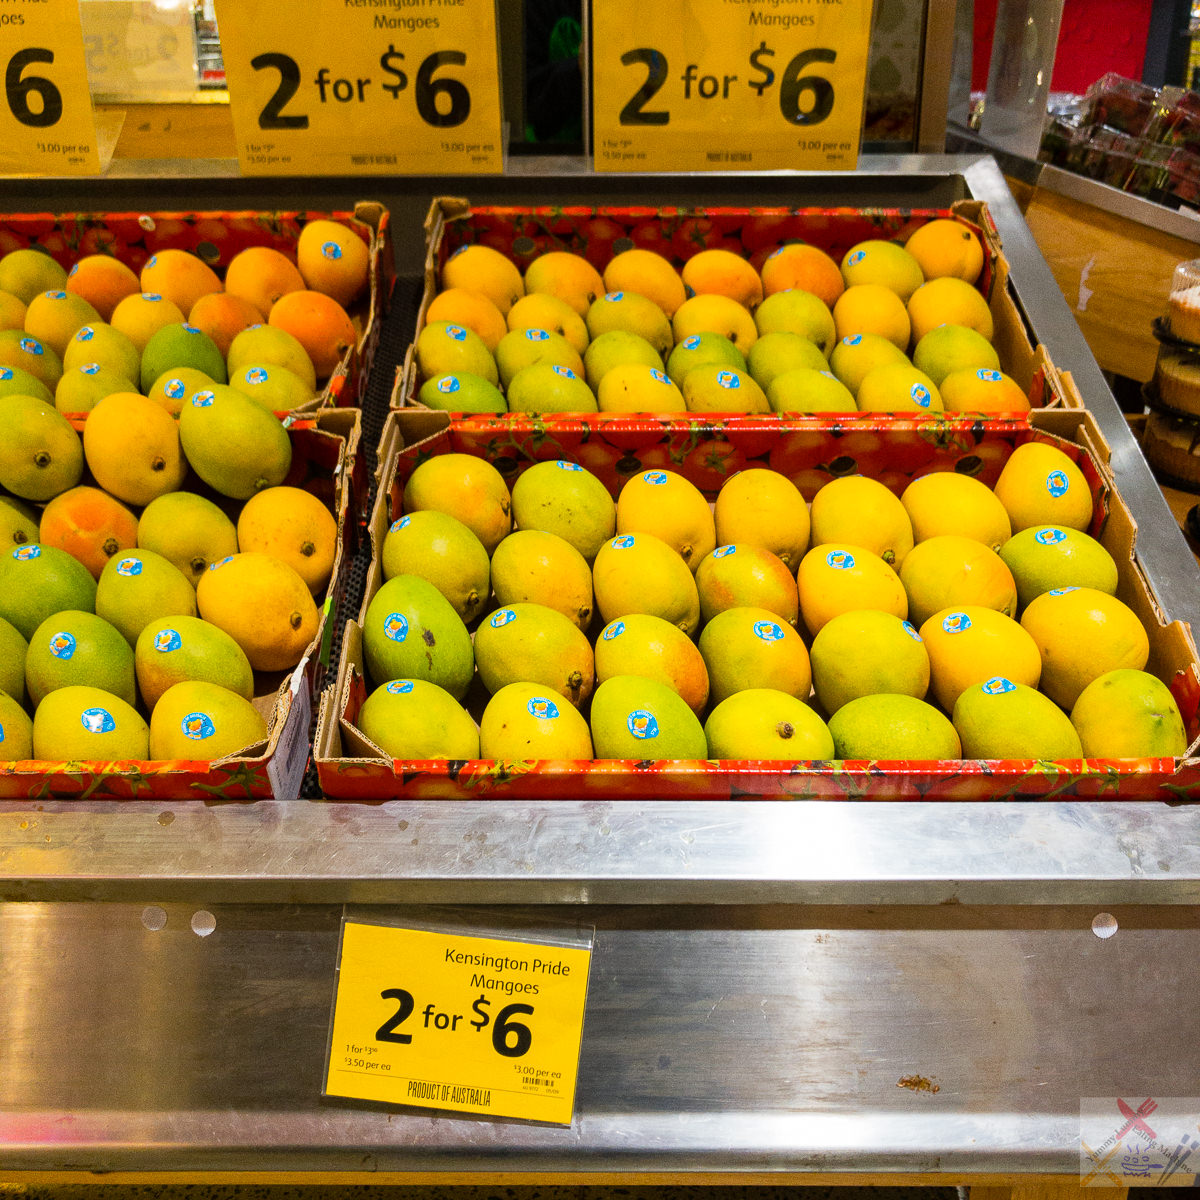 Kensington Pride mangoes 2 for $6 Gary Lum